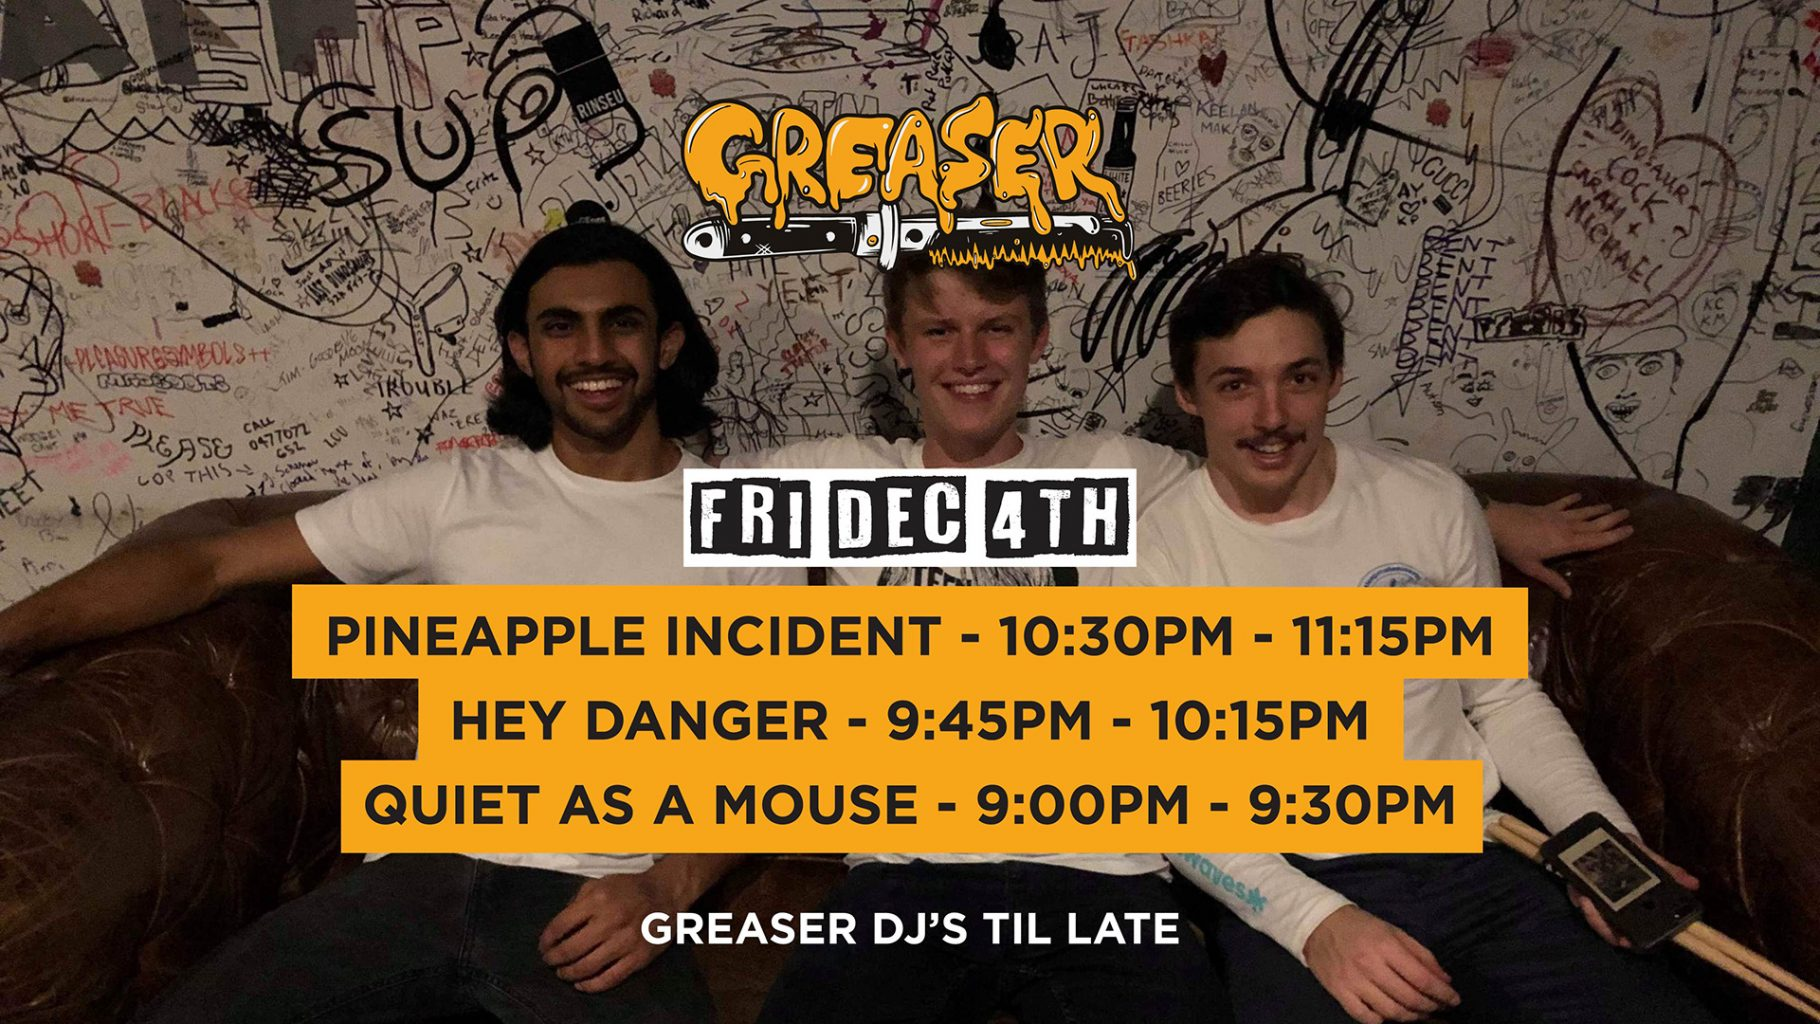 Pineapple Incident, Hey Danger & Quiet as a Mouse | Friday 4th December